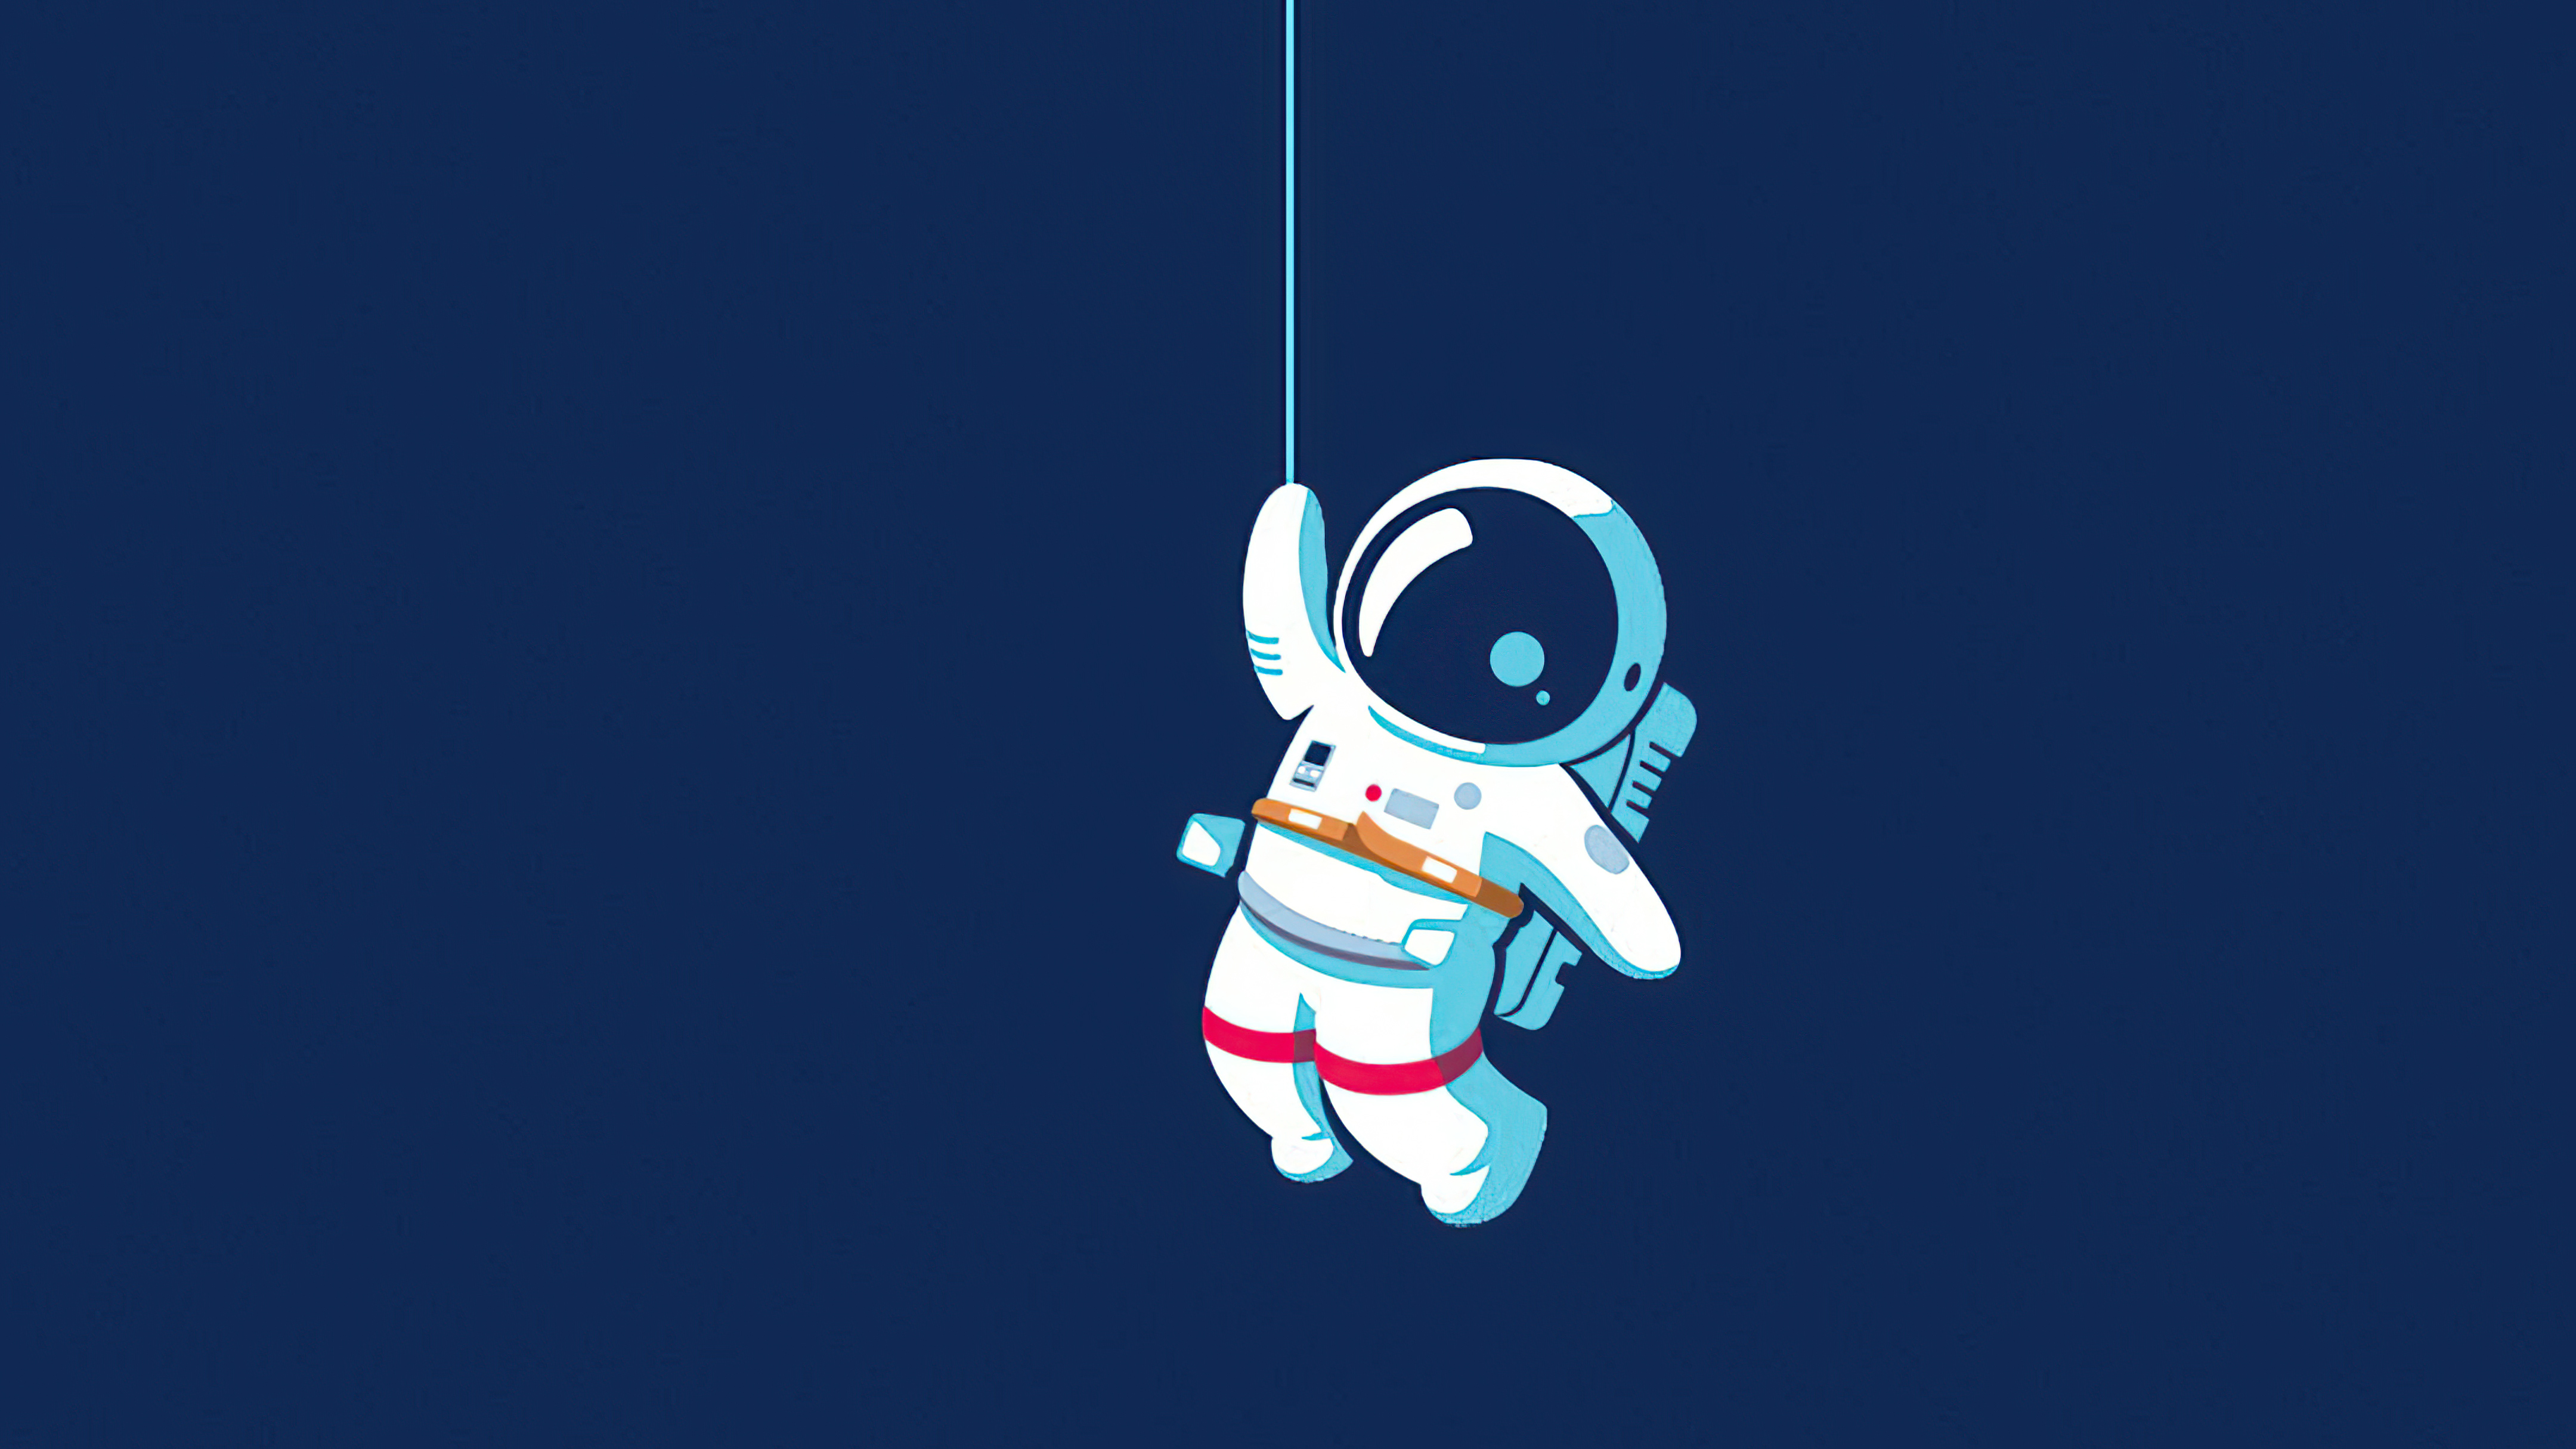 1360x768 Astronaut Hanging On Moon 4k Laptop Hd Hd 4k Wallpapers Images Backgrounds Photos And Pictures